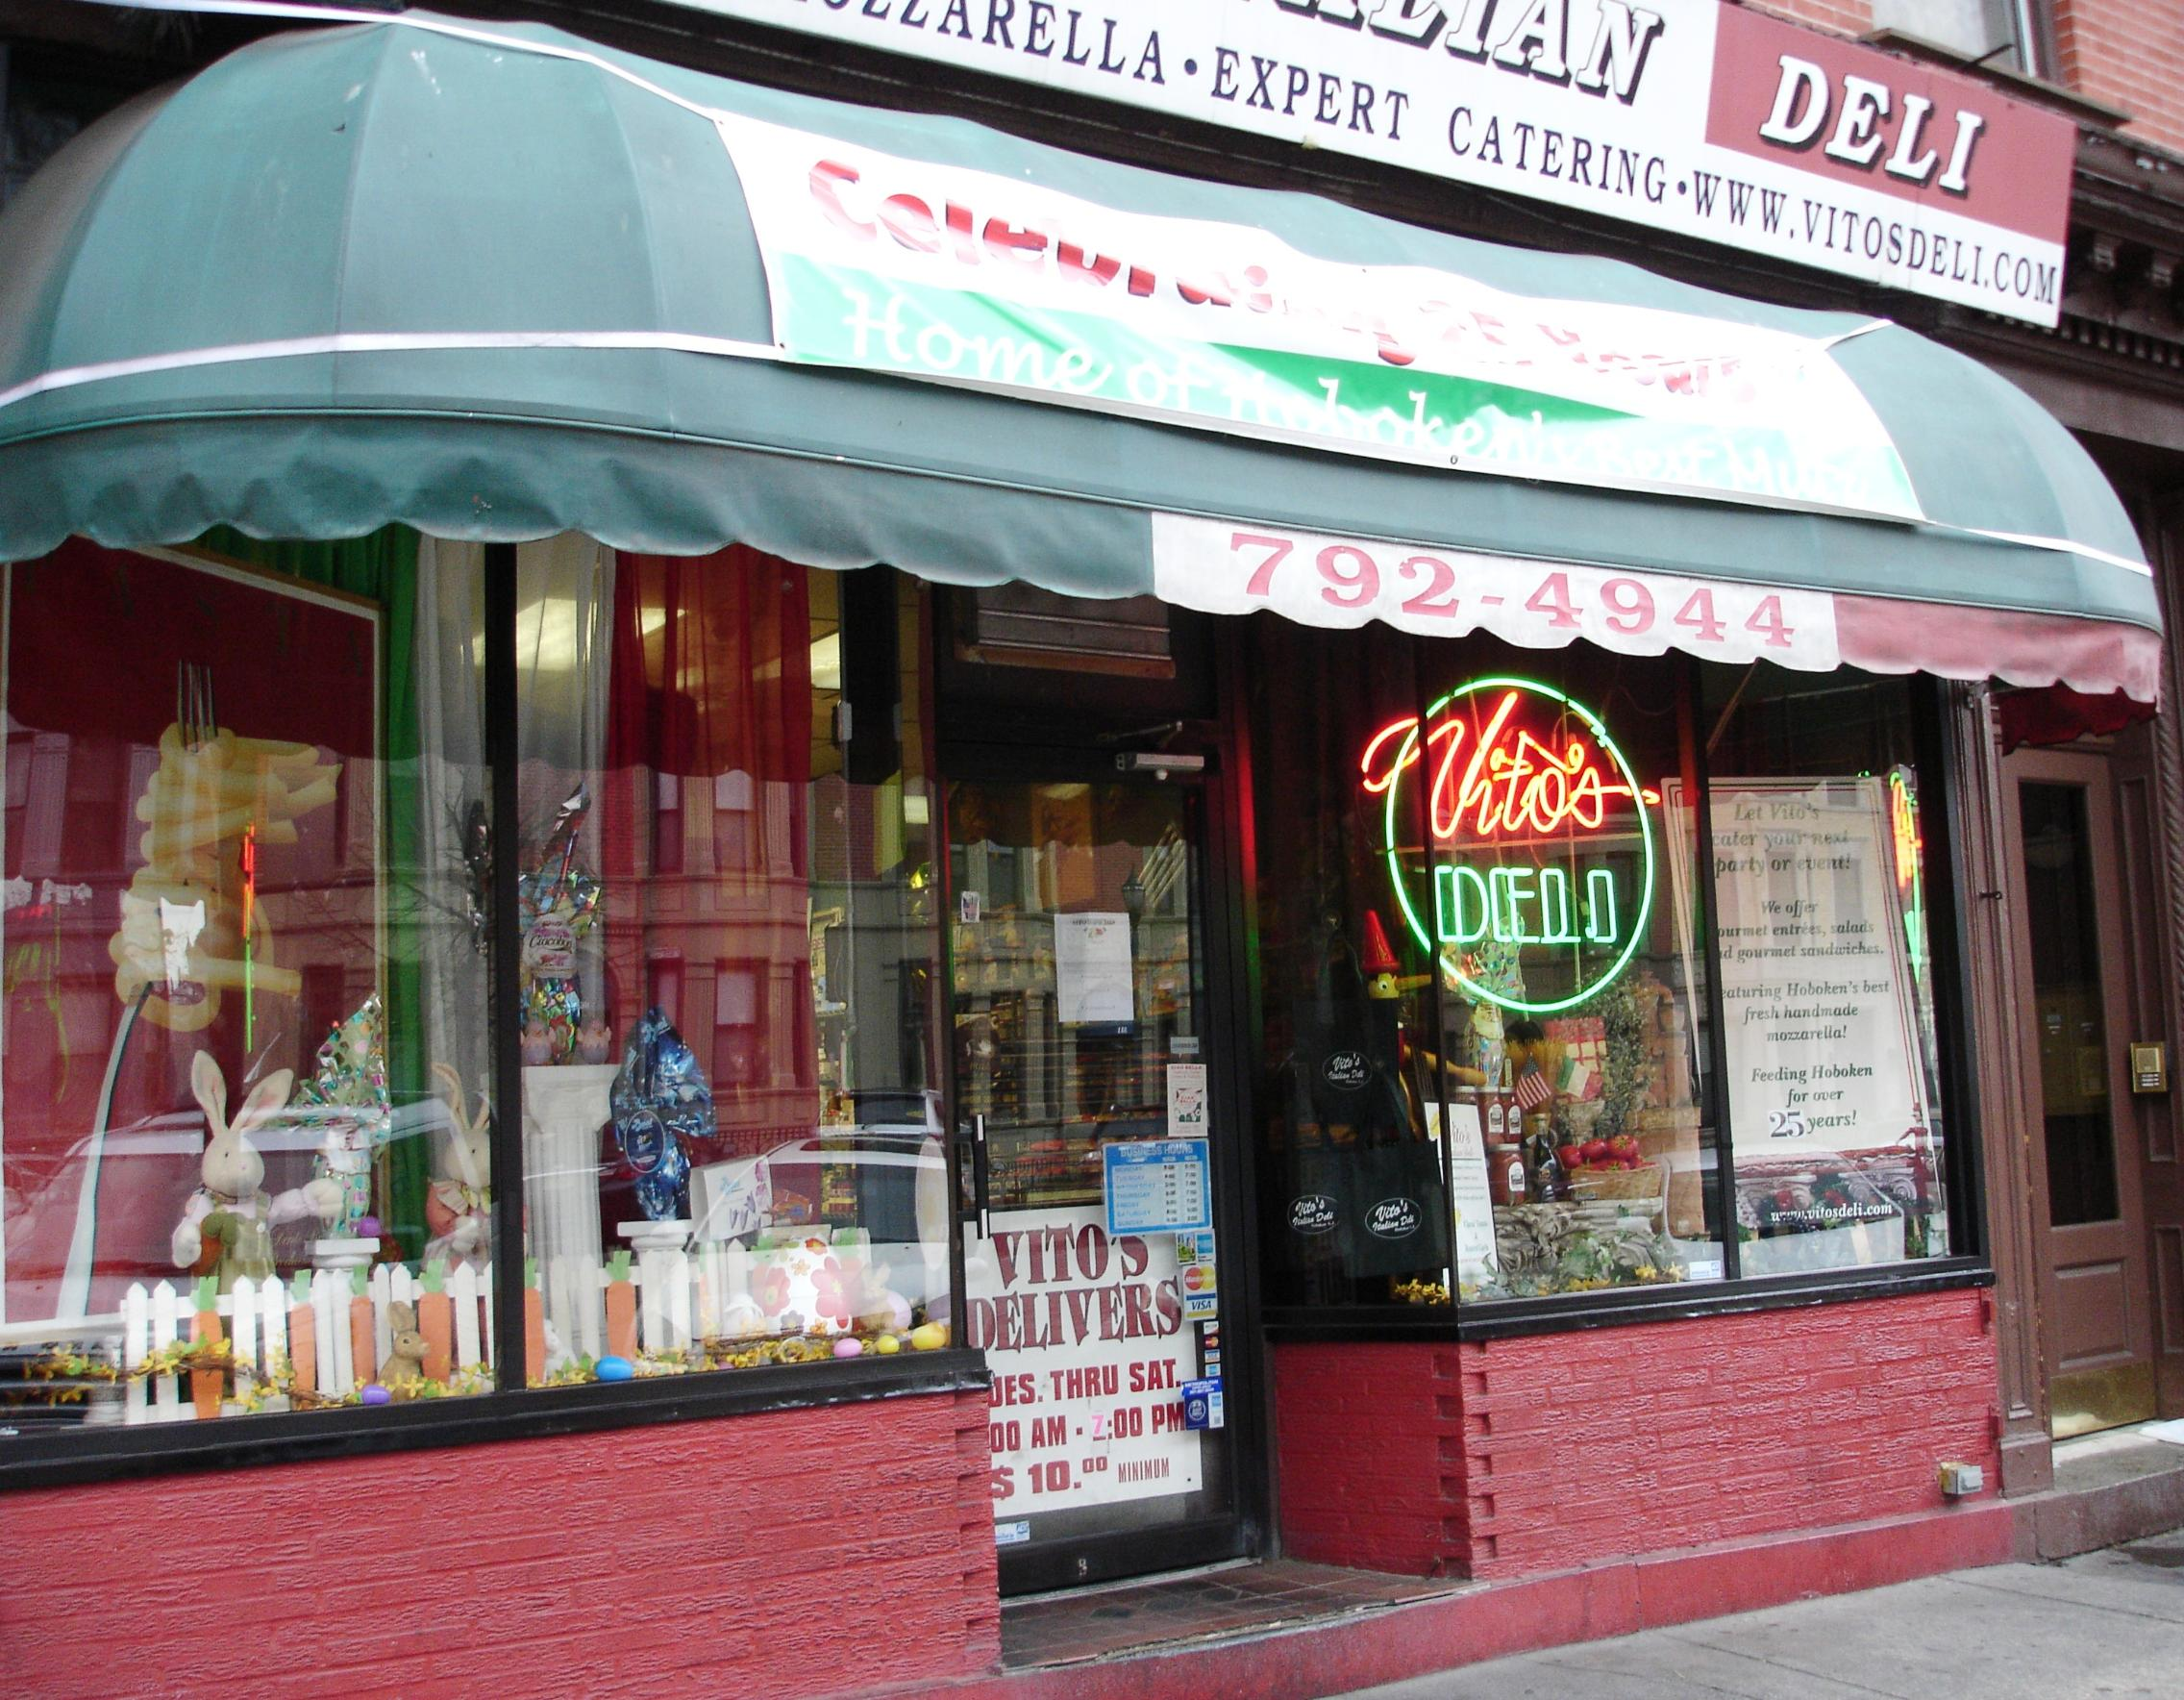 Washington Street is Hoboken's main drag, where you'll find just about anything you want to eat, from sushi to chicken tikka masala, along with a disturbing number of branches of national chains. Vito's Deli is one of a kind.